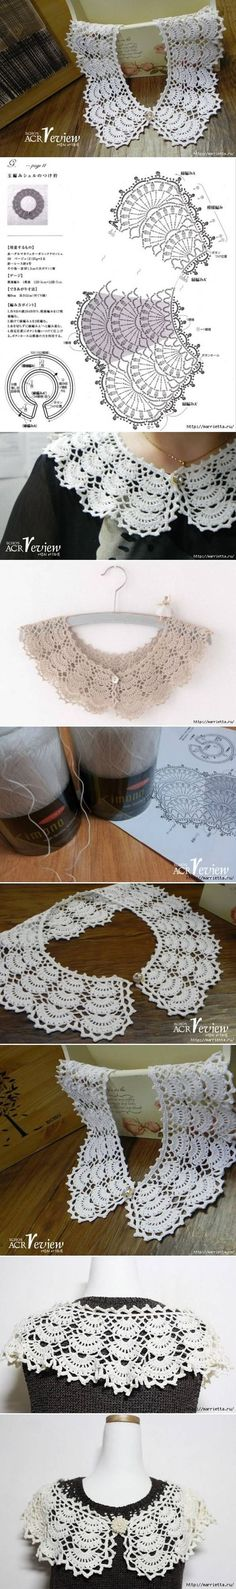 DIY Open Work Crochet Collar DIY Projects / UsefulDIY.com